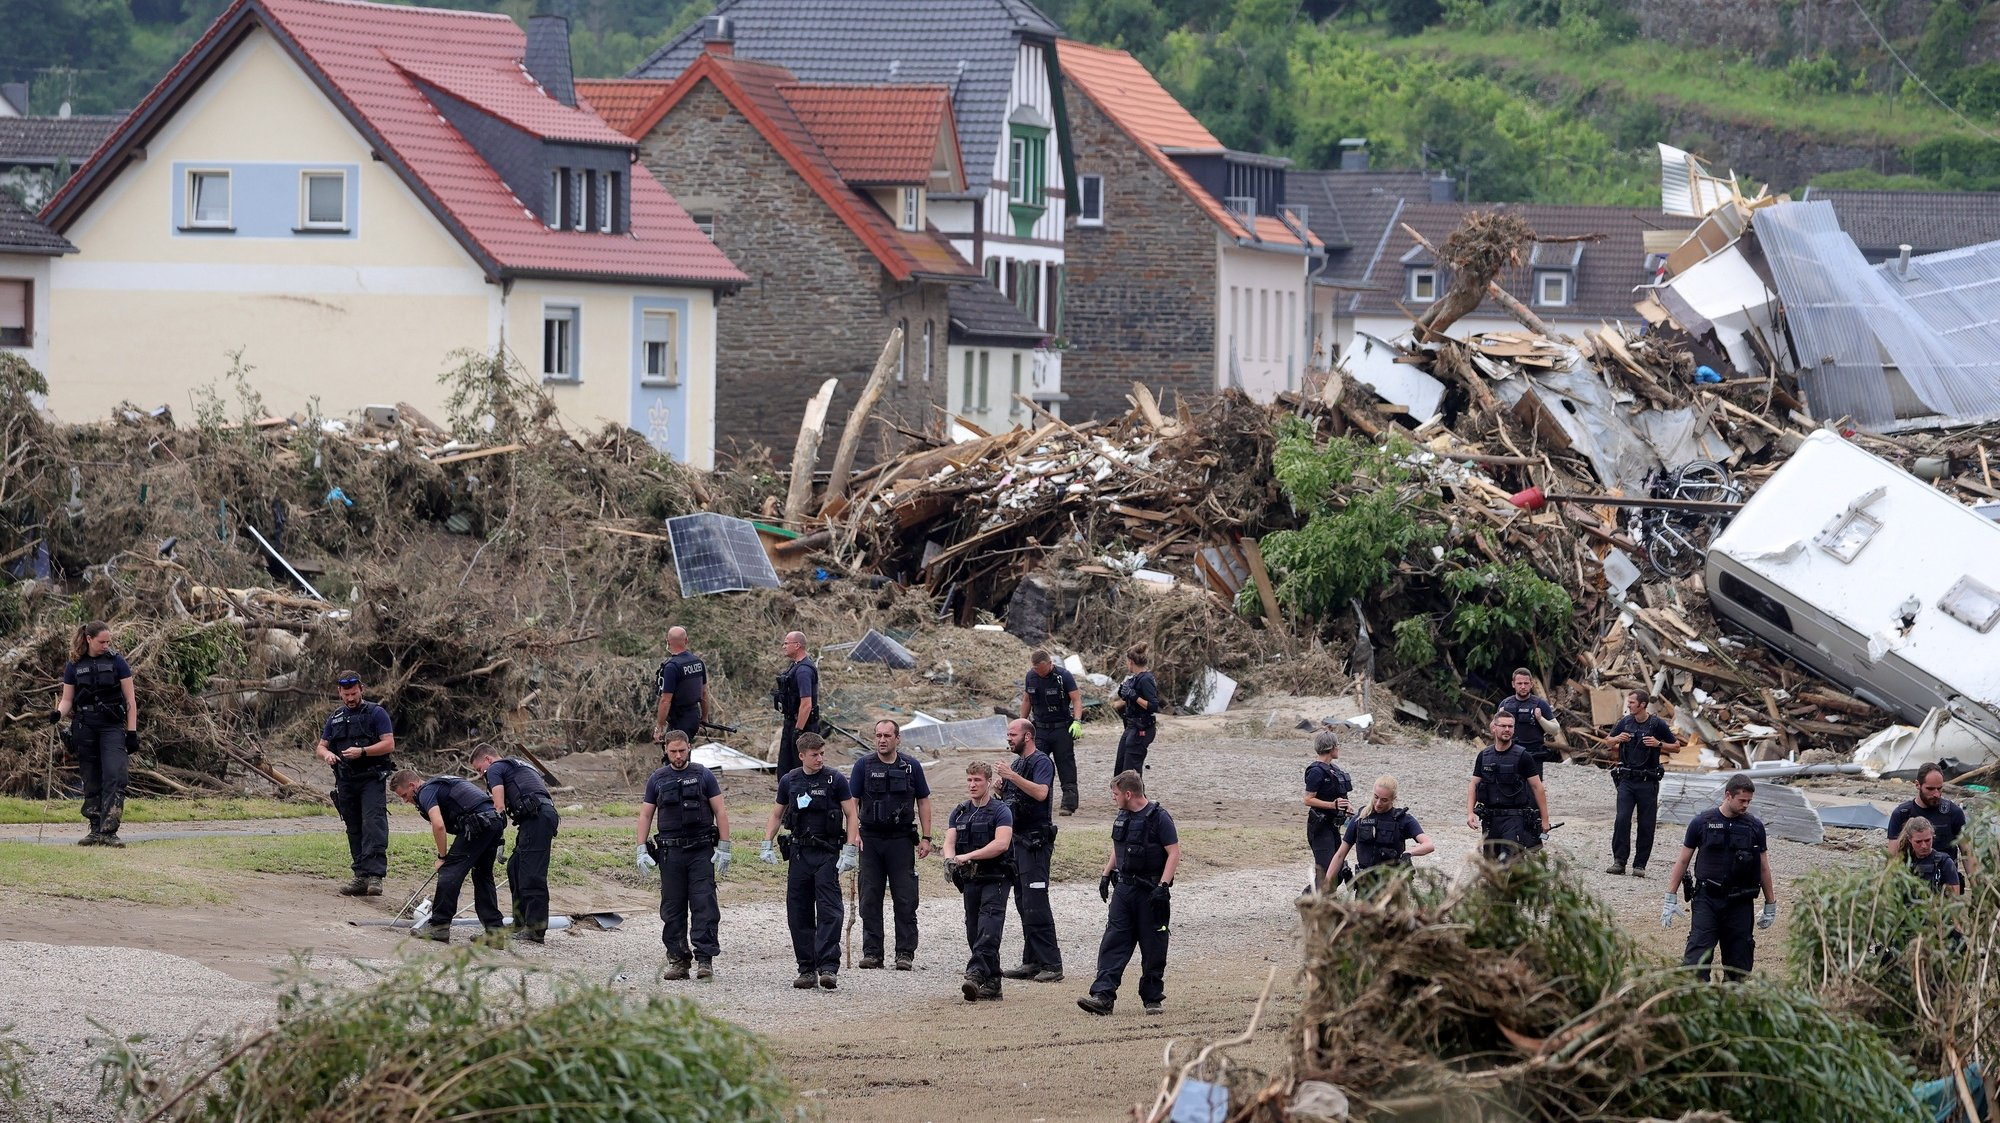 epa09353802 Police officers inspect the area after the flooding of the Ahr River, in Altenahr, Germany, 19 July 2021. Large parts of western Germany and central Europe were hit by flash floods in the night of 14 to 15 July, following days of continuous rain that destroyed buildings and swept away cars. The total number of victims in the flood disaster in western Germany rises to at least 164, with many hundreds still missing.  EPA/FRIEDEMANN VOGEL